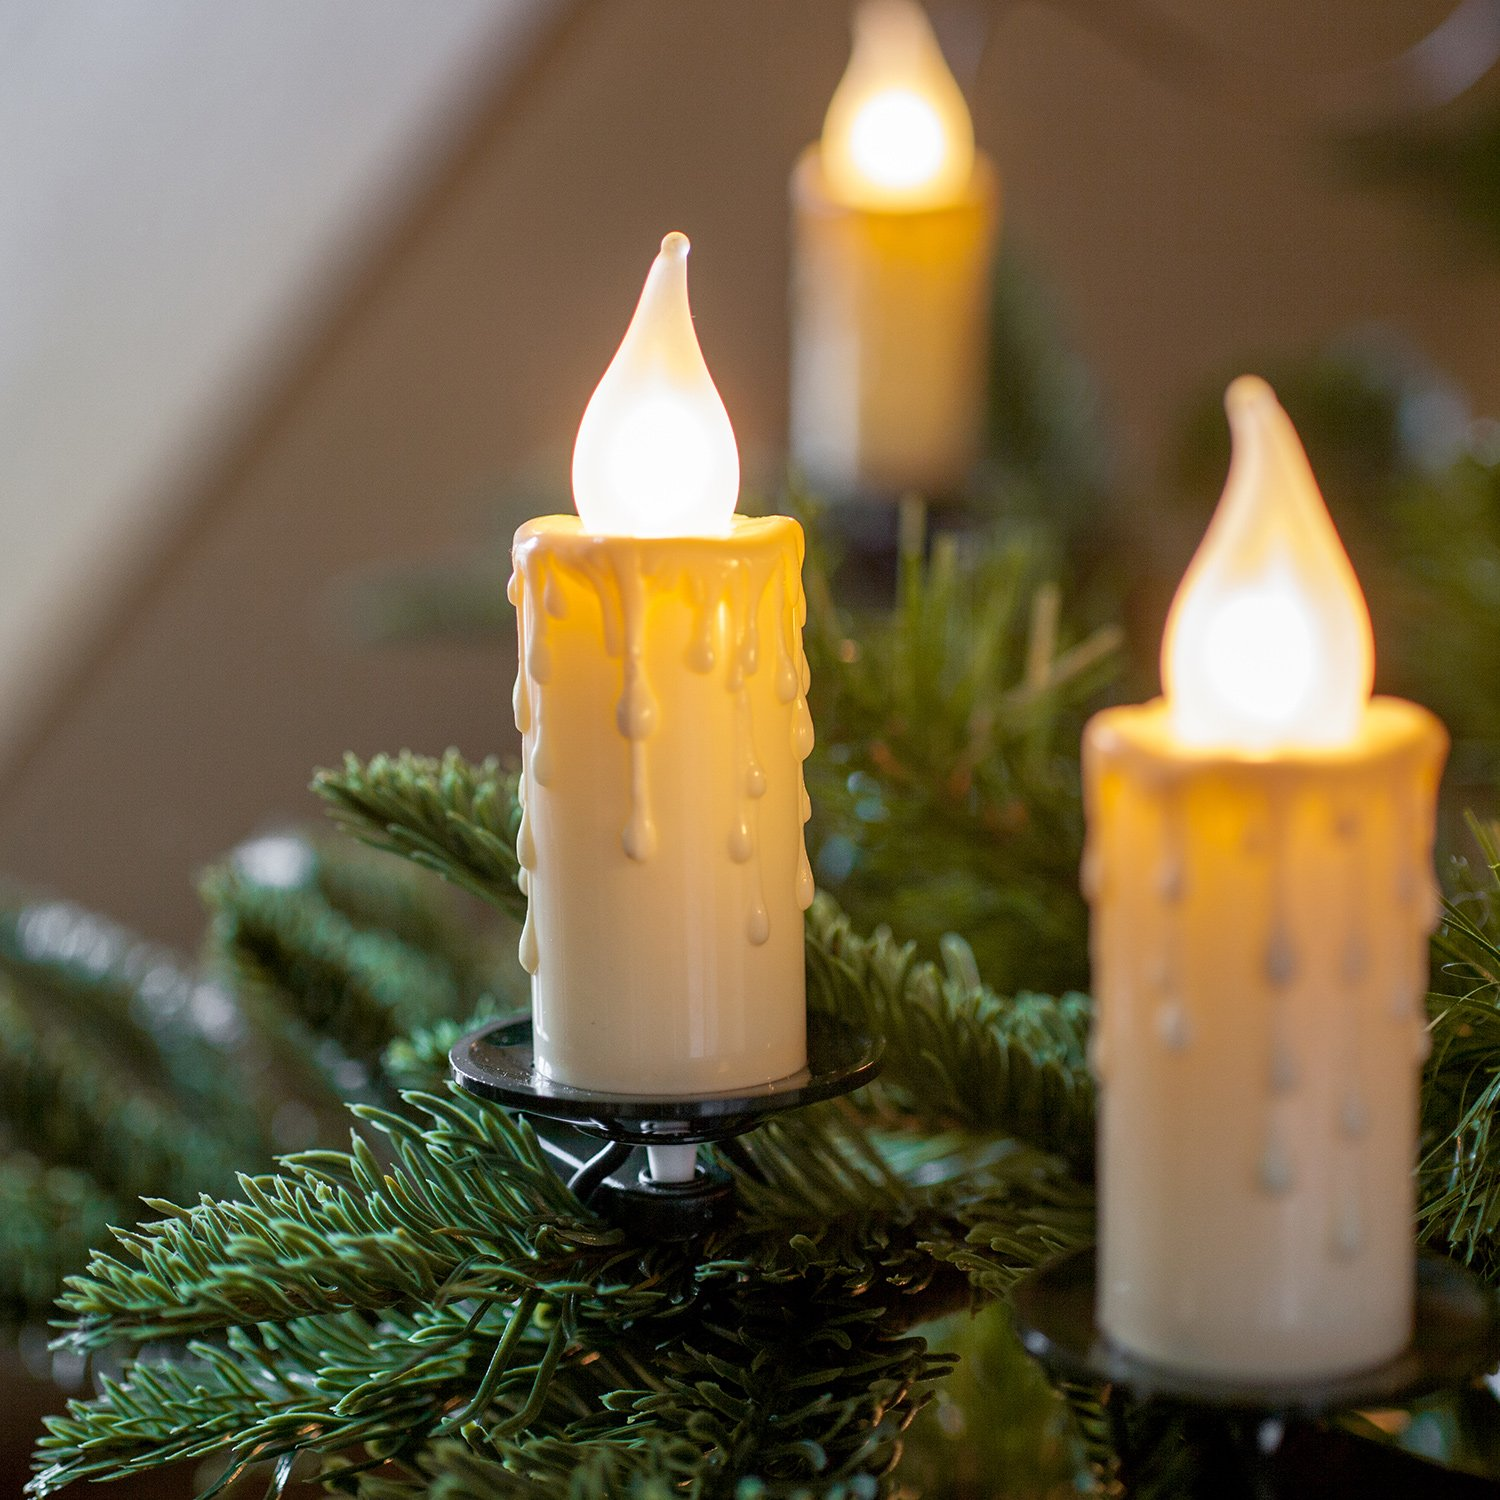 40 candle lights for christmas tree clear on green cable for a